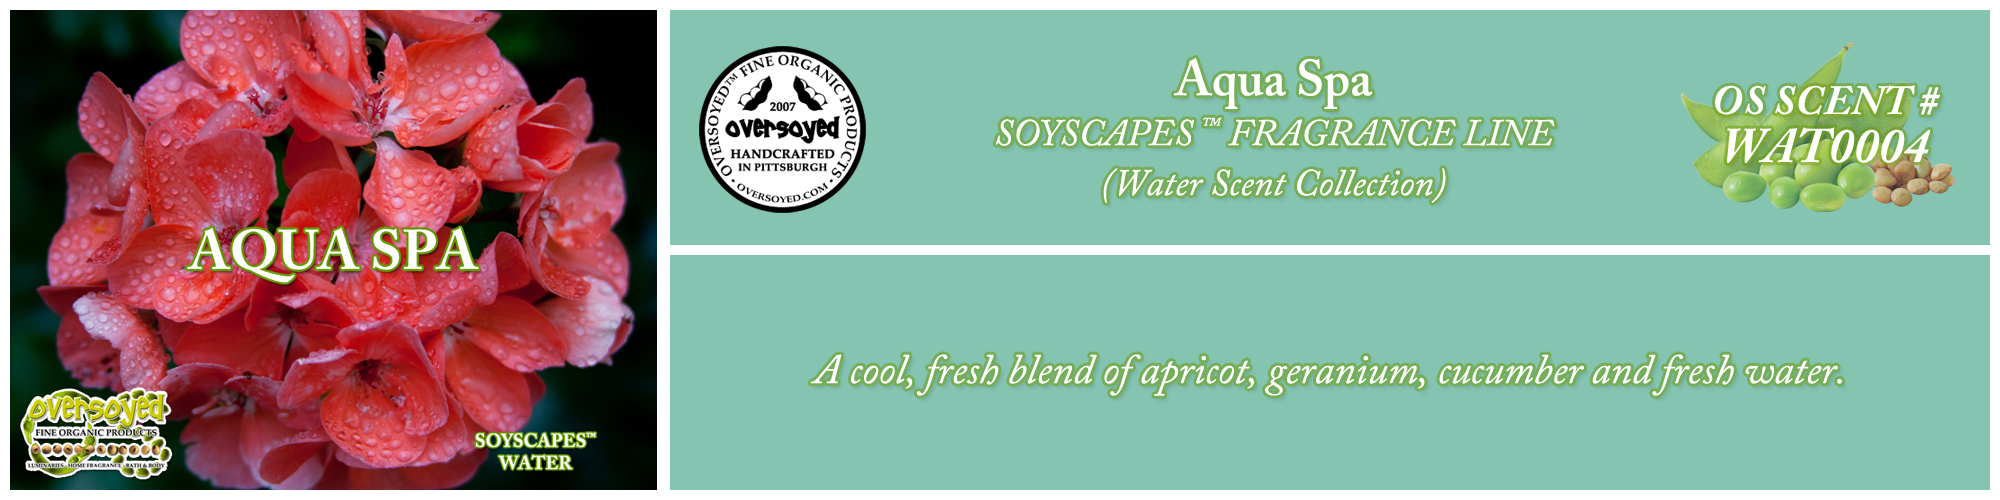 Aqua Spa Handcrafted Products Collection